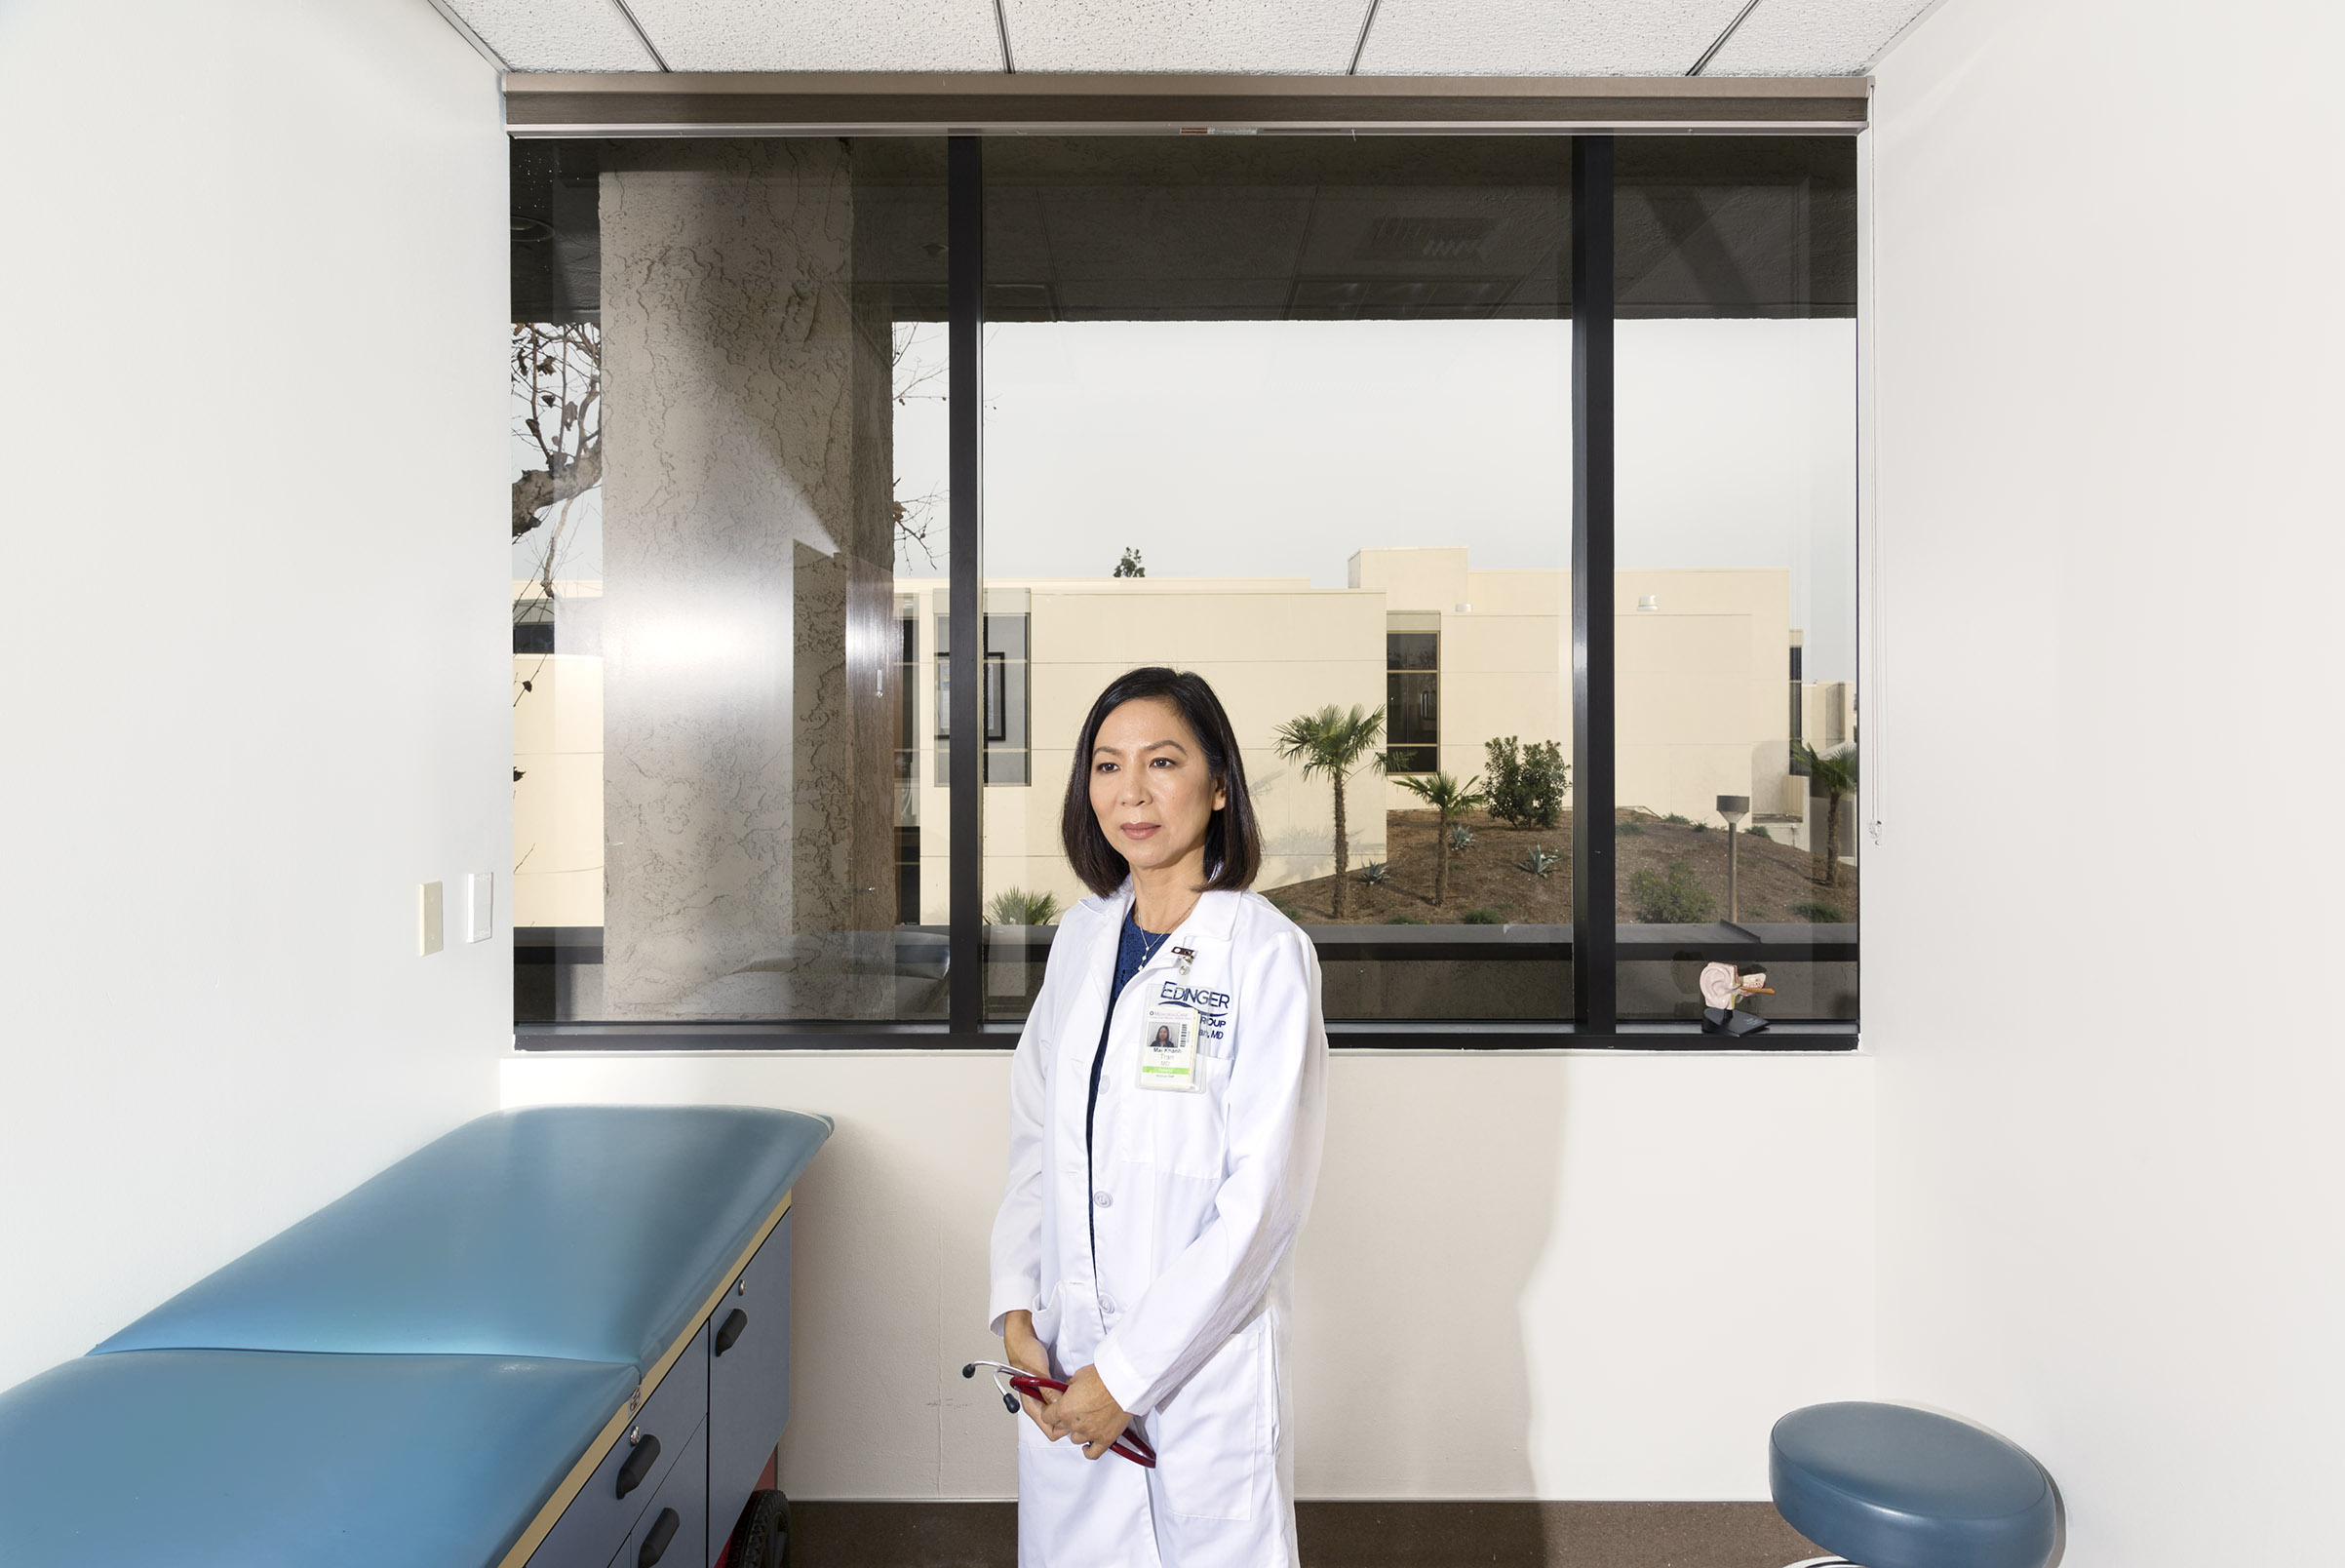 Mai Khanh Tran fled Saigon at age 9, worked through Harvard as a janitor and started her own pediatrics practice. Now she's running for California's 39th Congressional District